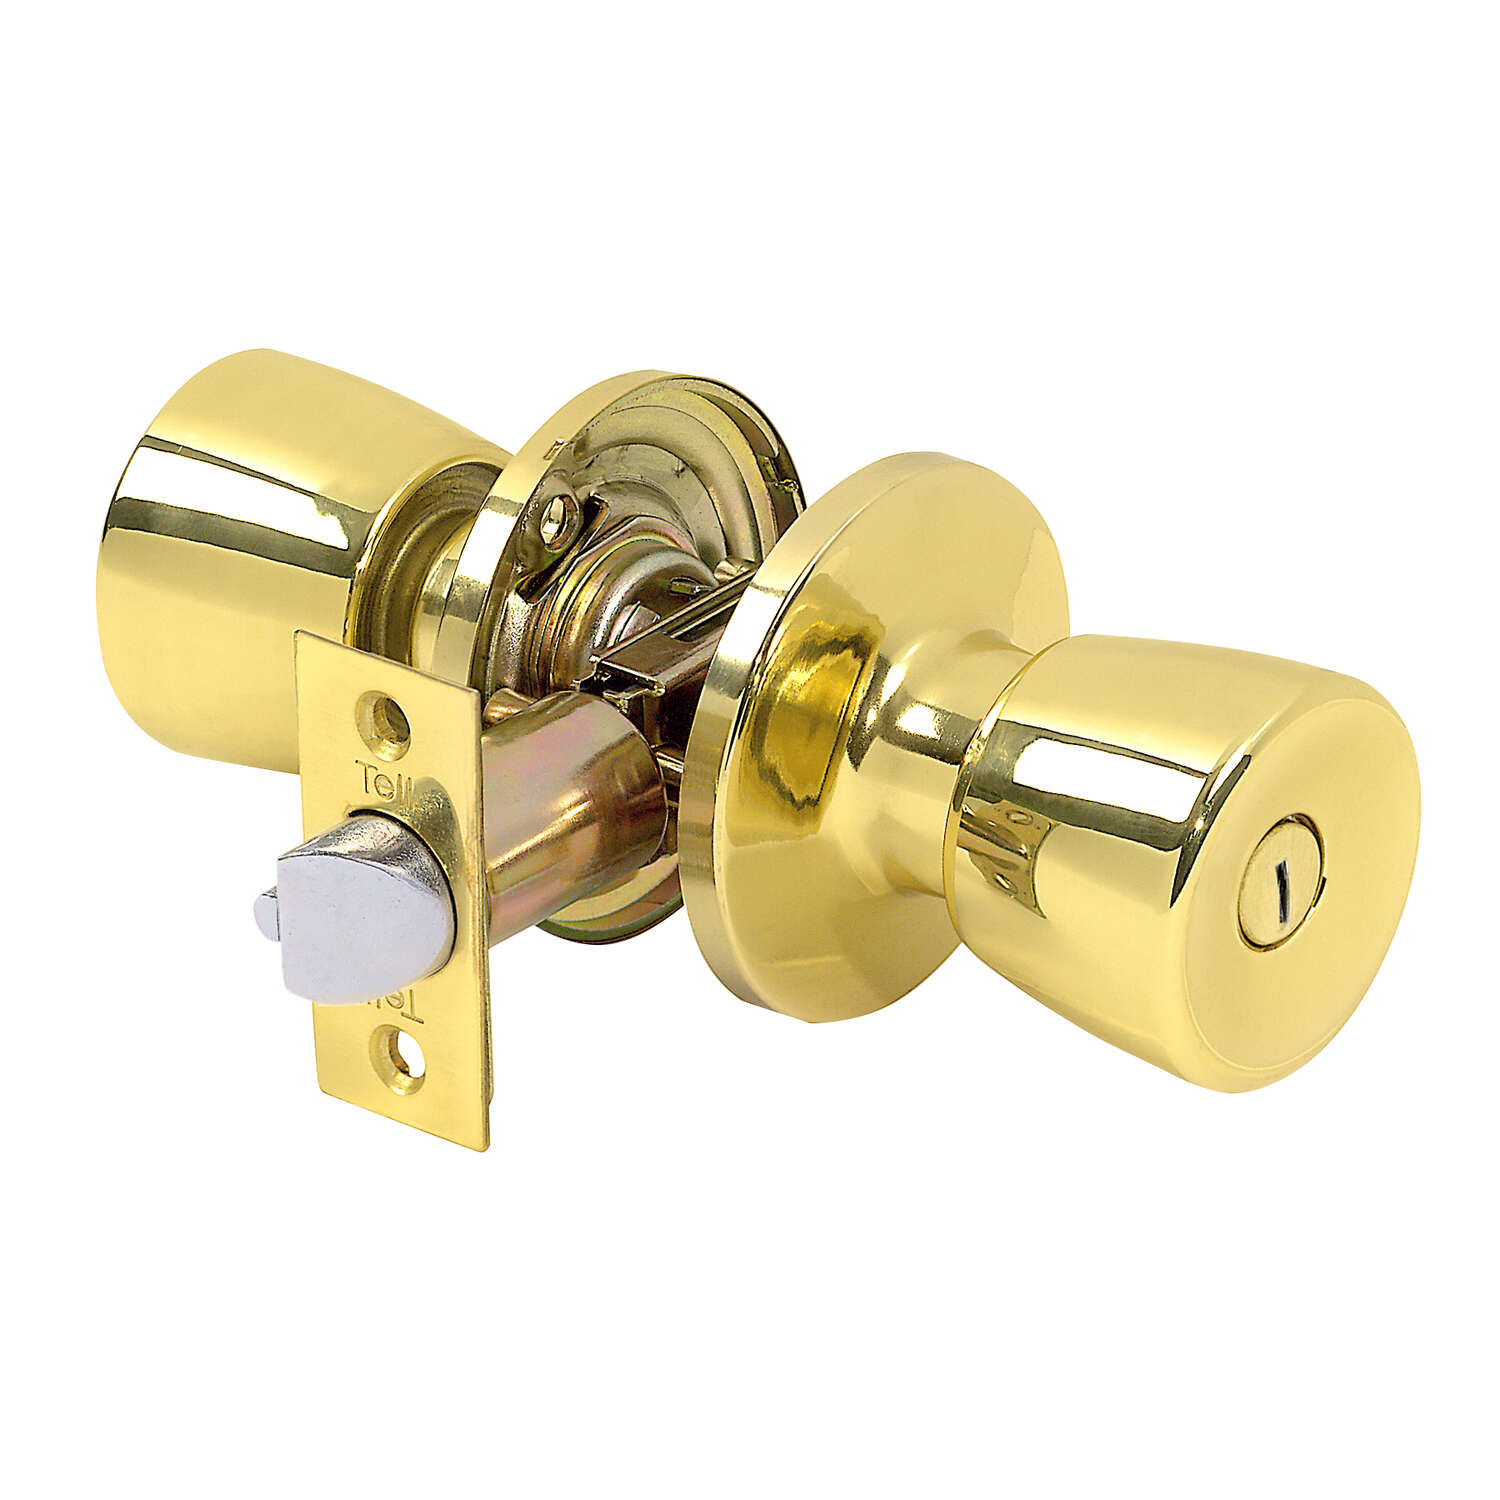 Tell Alton Bright Brass Steel Privacy Knob 3 Right or Left Handed